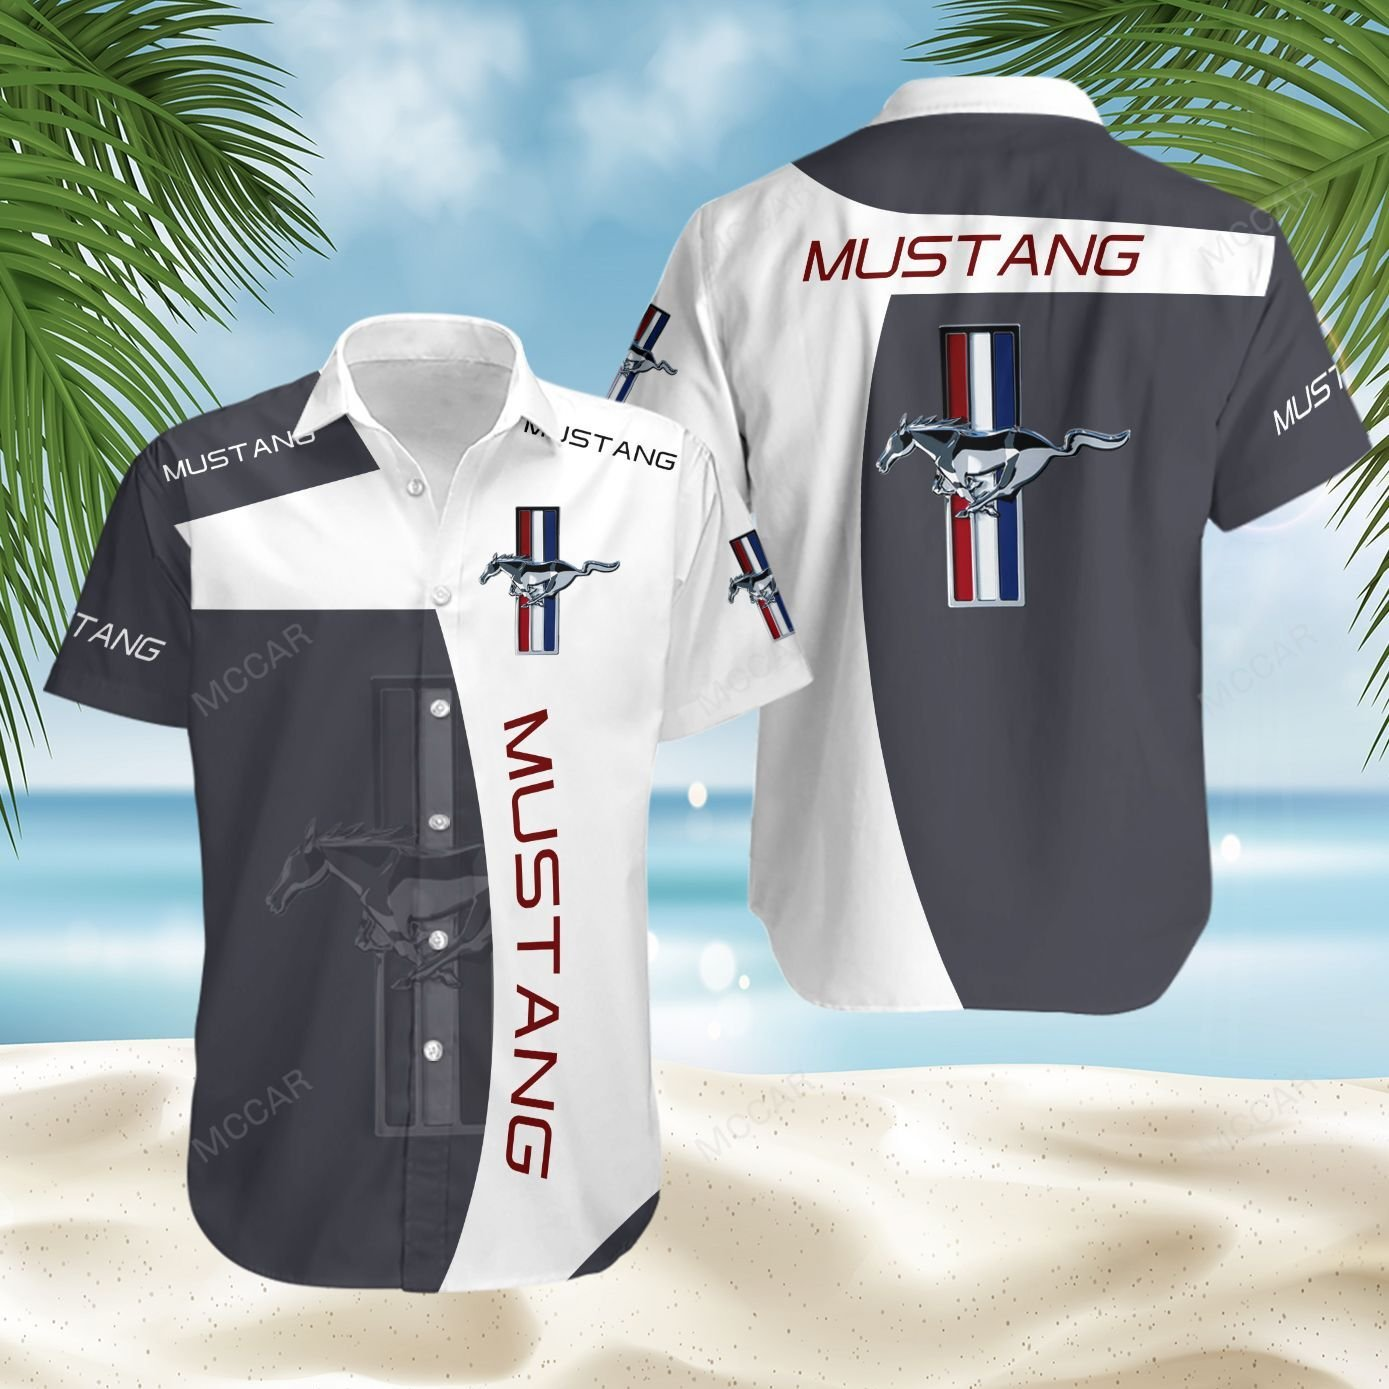 Mustang Limited Edition Polo Shirt